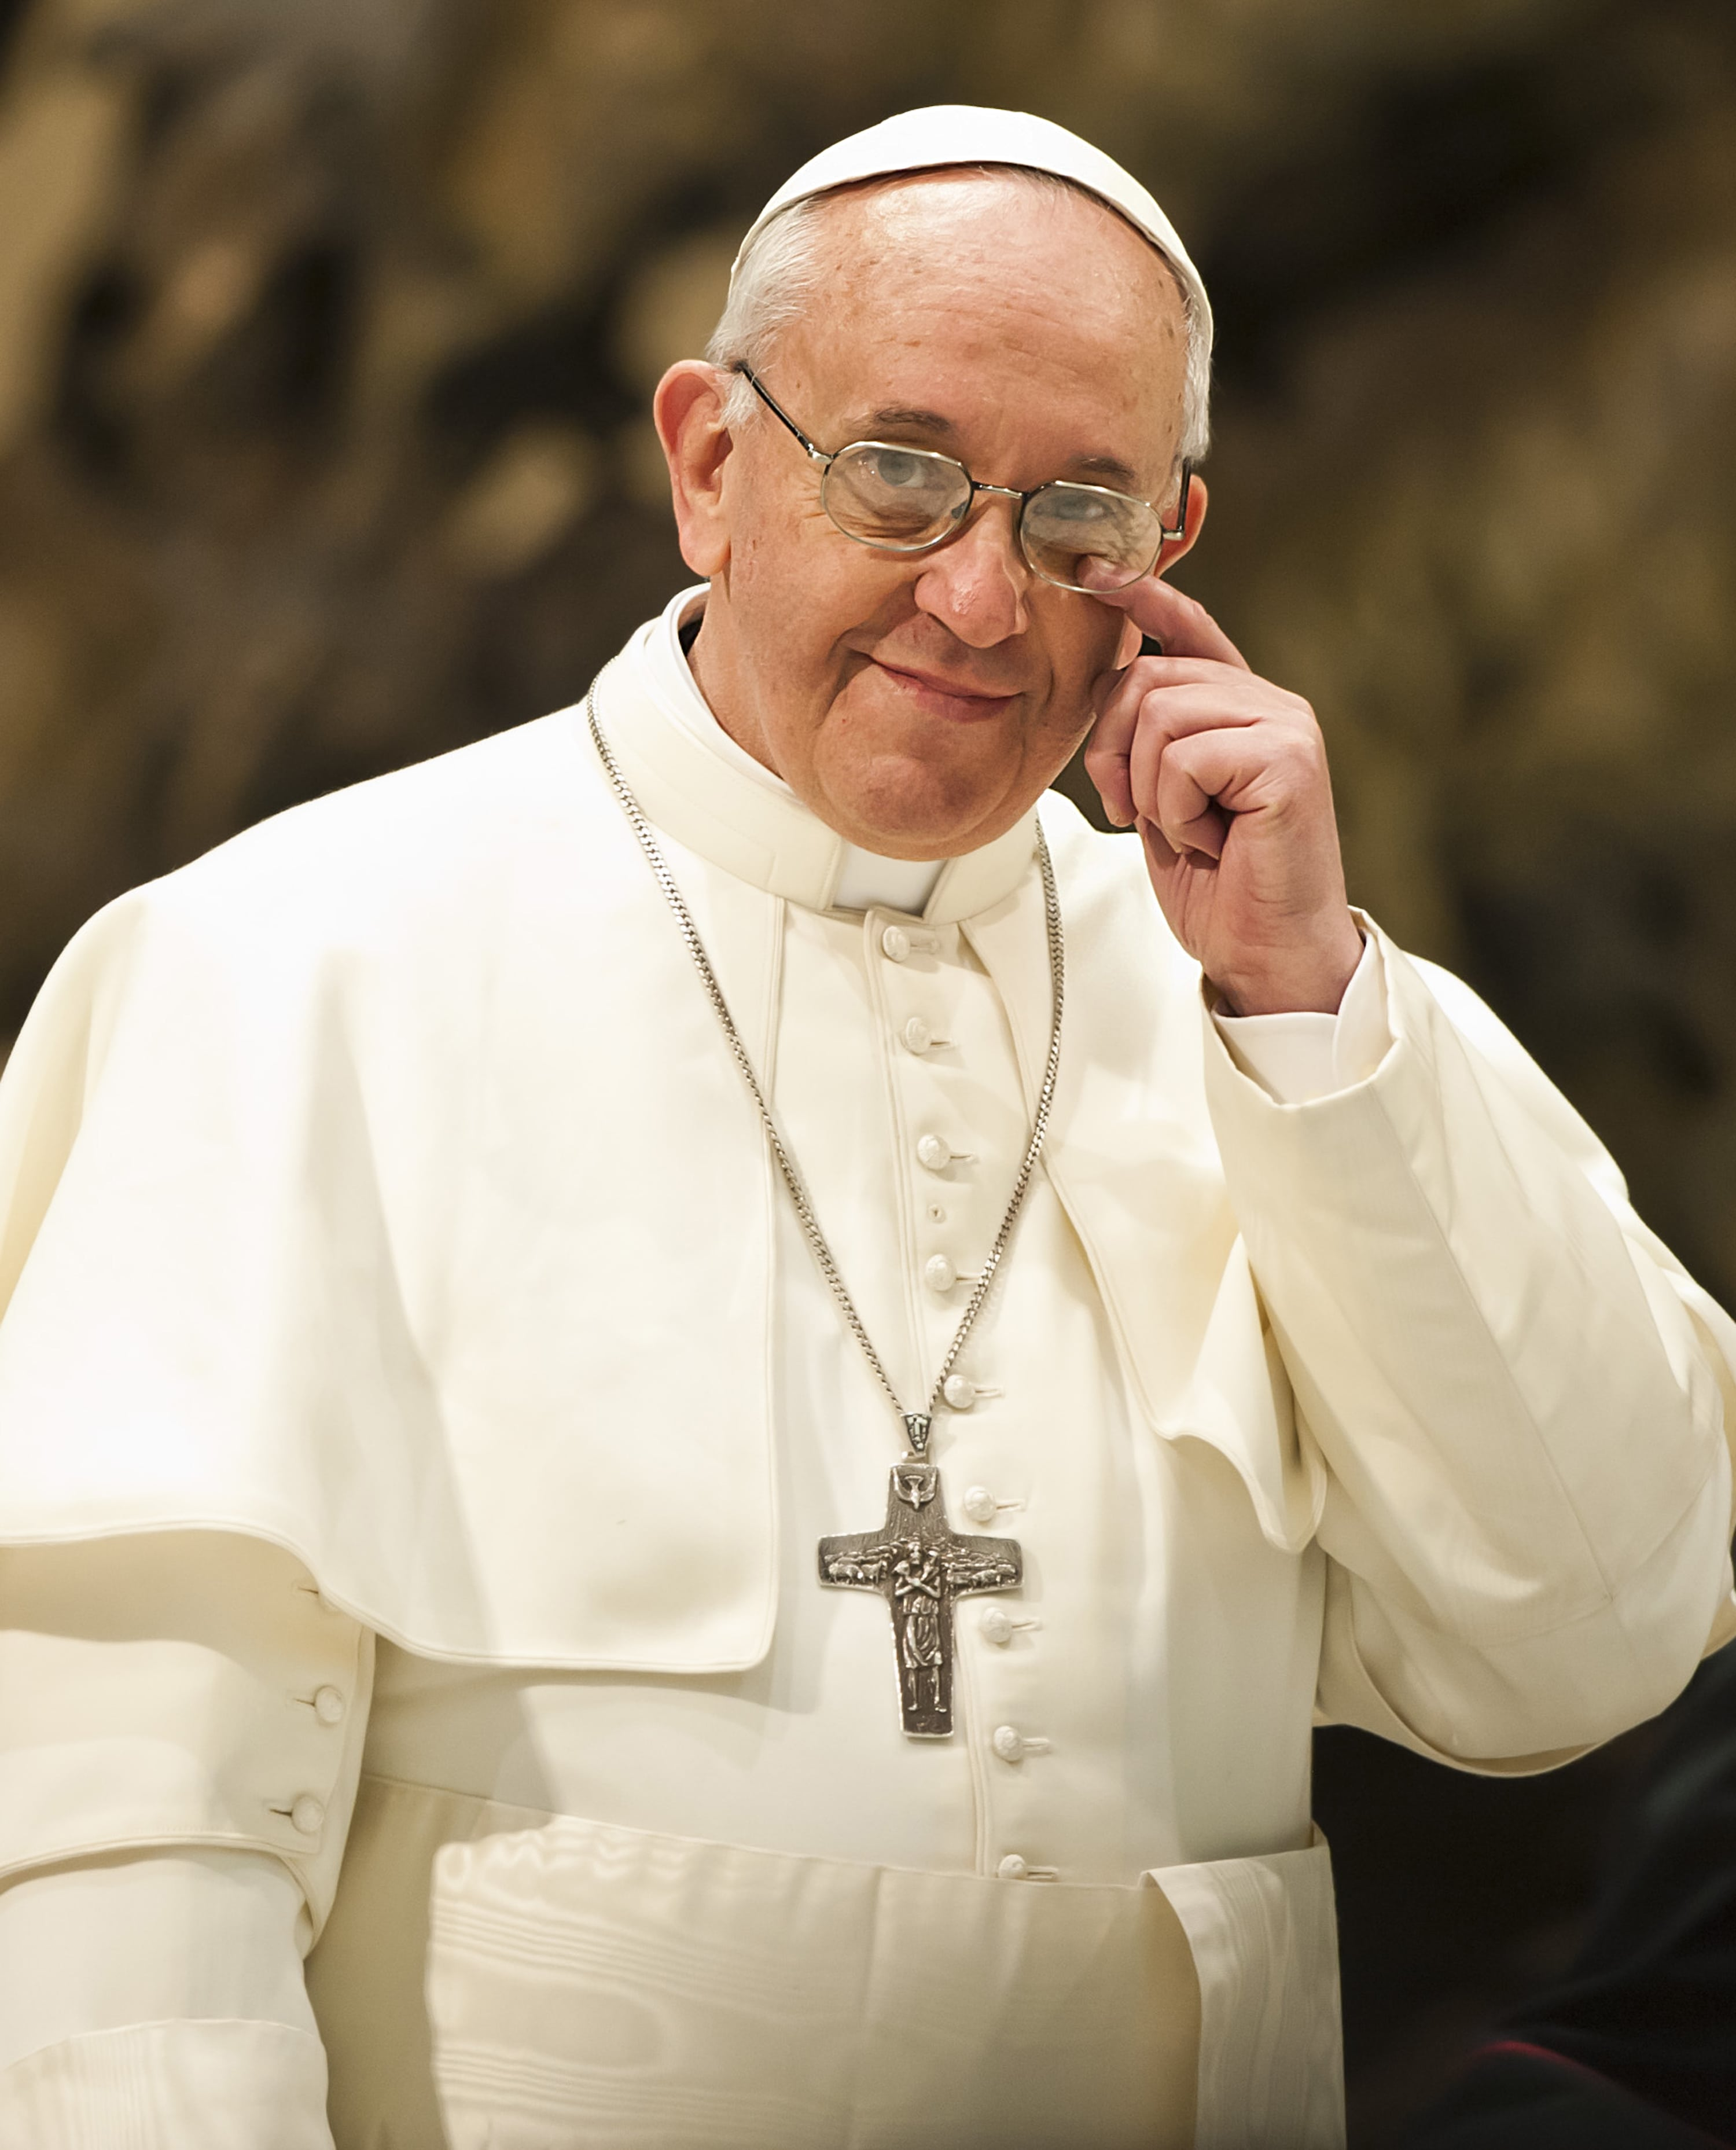 The Church of Contradictions: a Review of Pope Francis' Five Year Tenure - Polemics